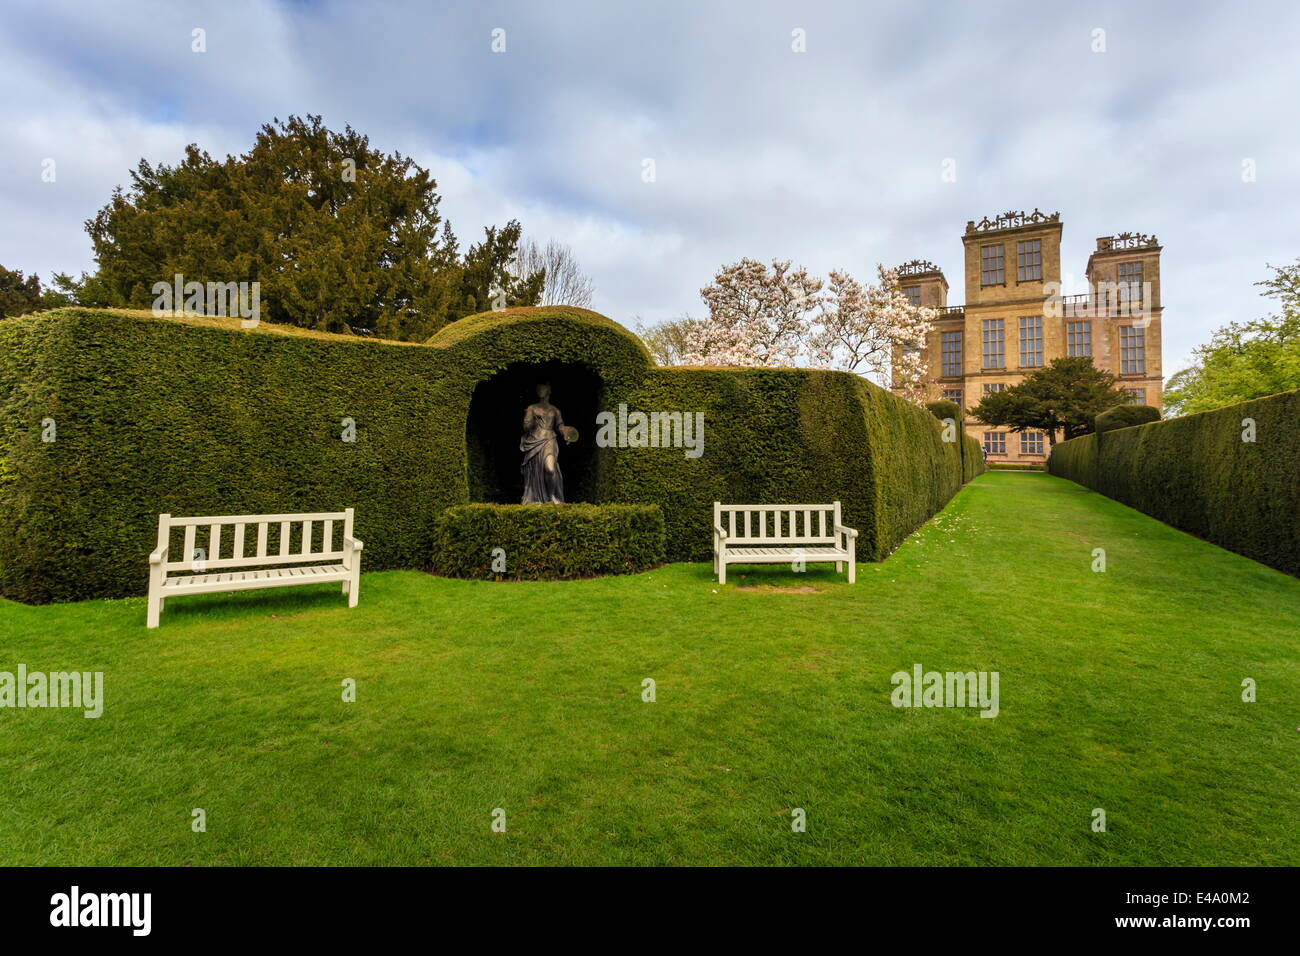 Yew hedge, seats and sculpture in spring at Hardwick Hall, near Chesterfield, Derbyshire, England, United Kingdom, - Stock Image